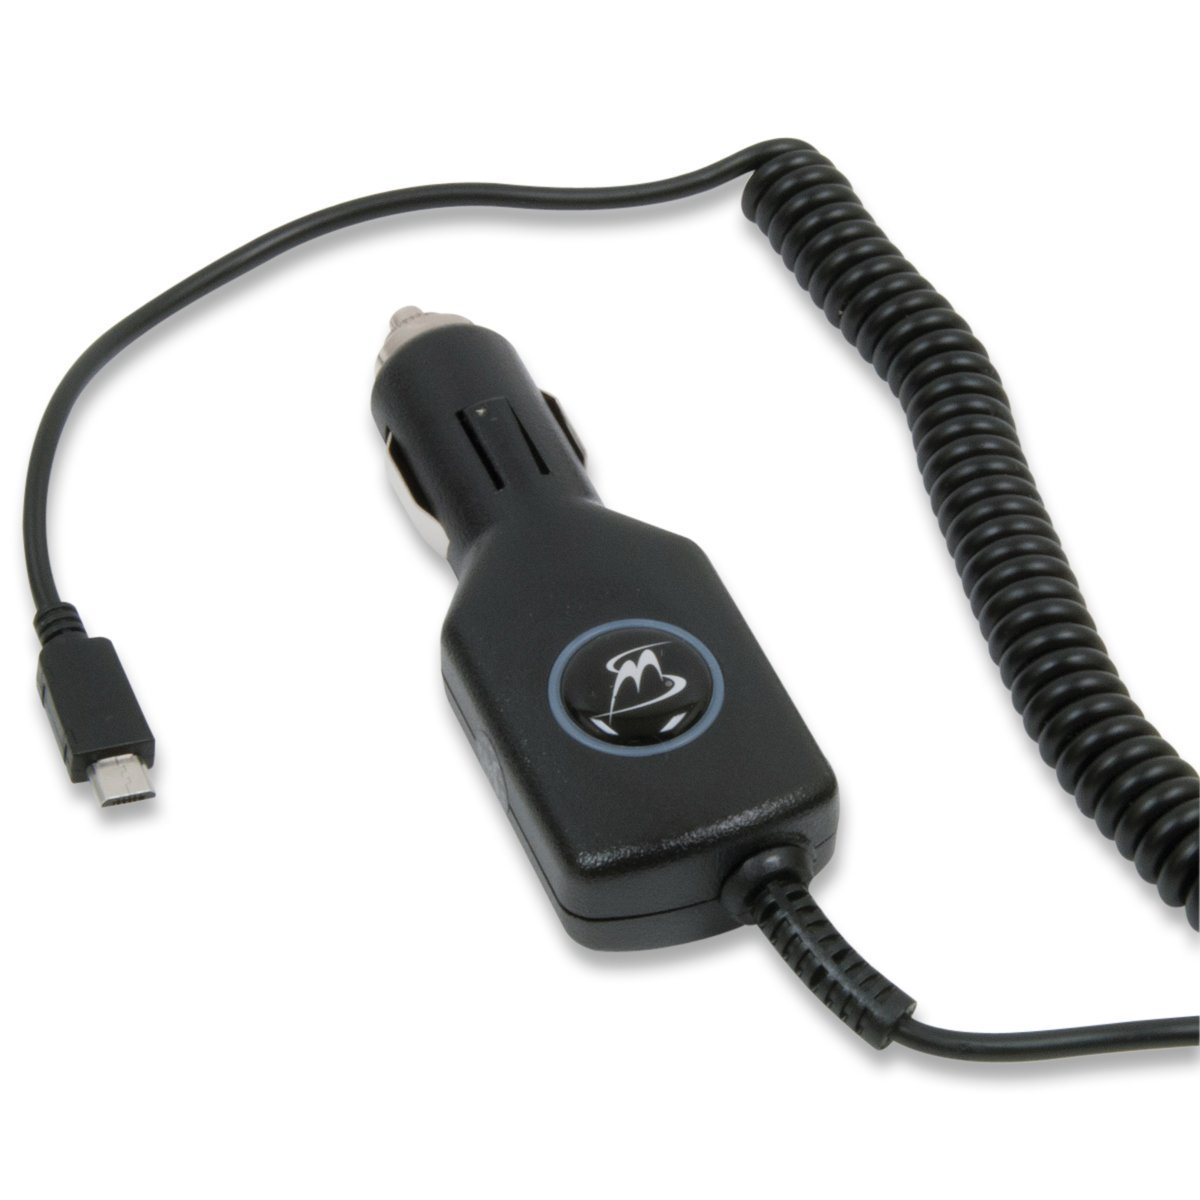 VXi BlueParrott C400-XT Bluetooth Headset -INCLUDES- MobileSpec 12V Replacement Car Charger with Micro USB Adapter AND 5-Pack Blucoil Cable Ties (Black, C400-XT)